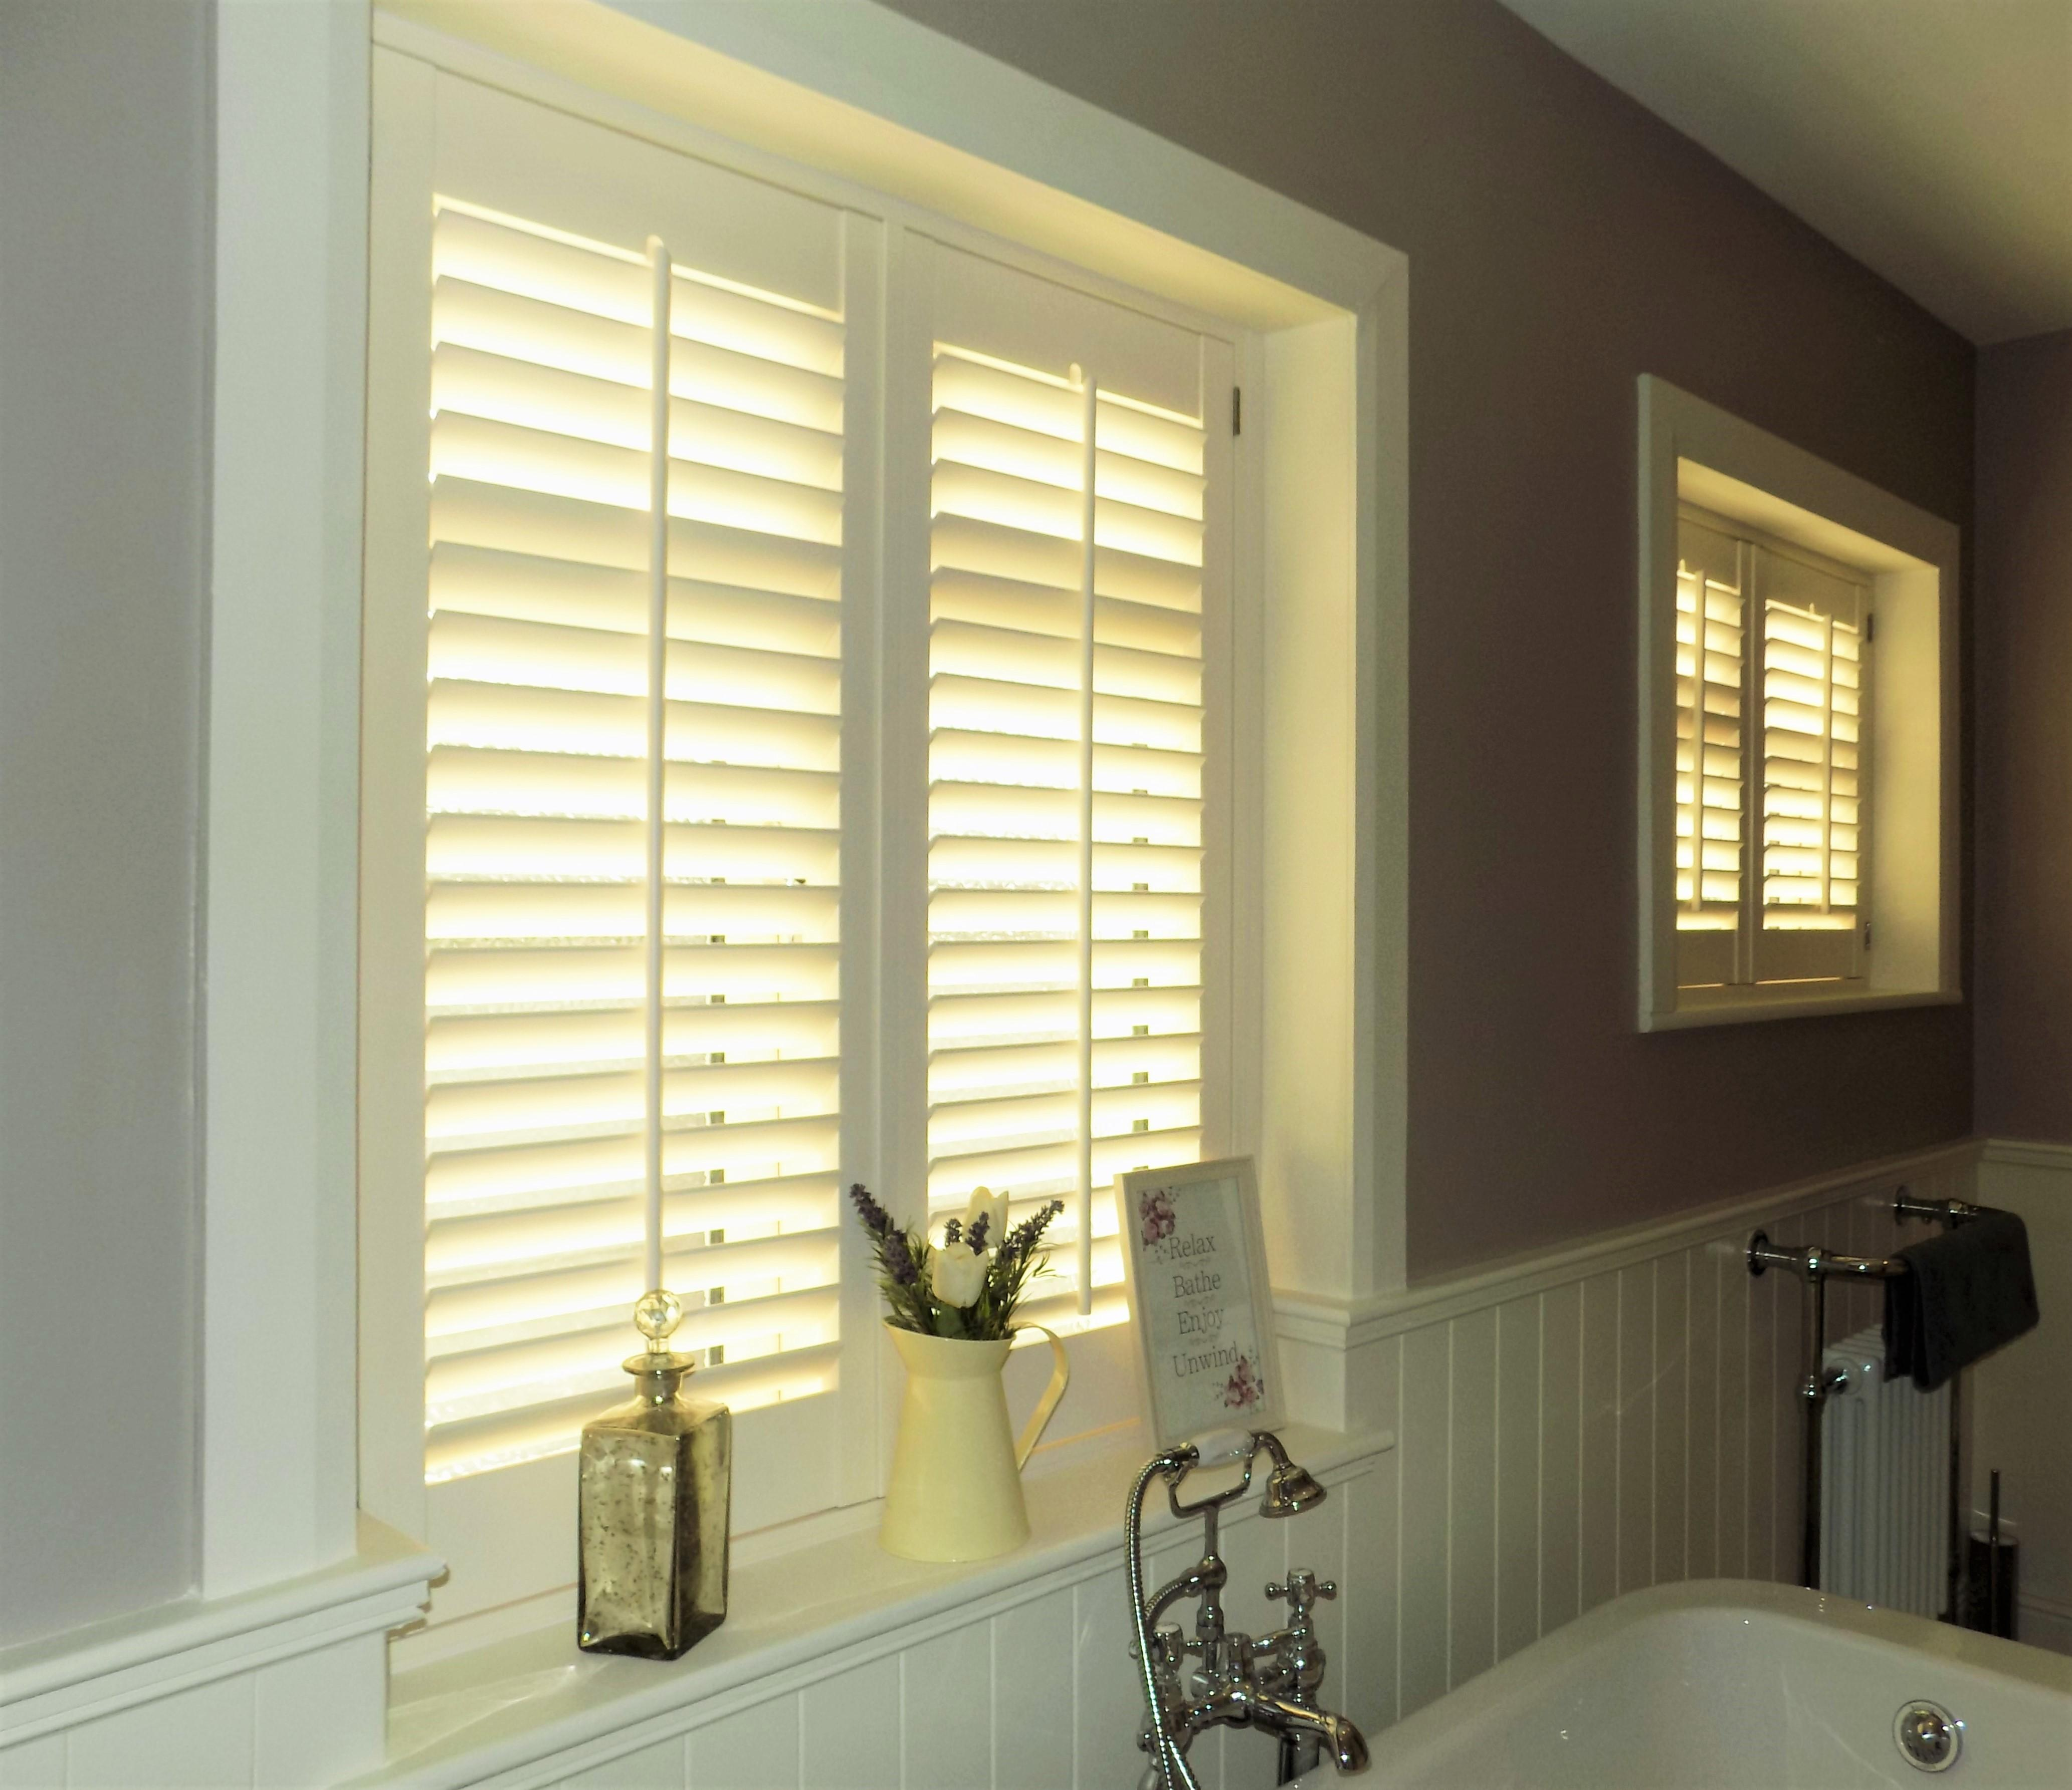 windows shutters ca blinds great are polycore shades choice a plantation hills for window bathroom chino